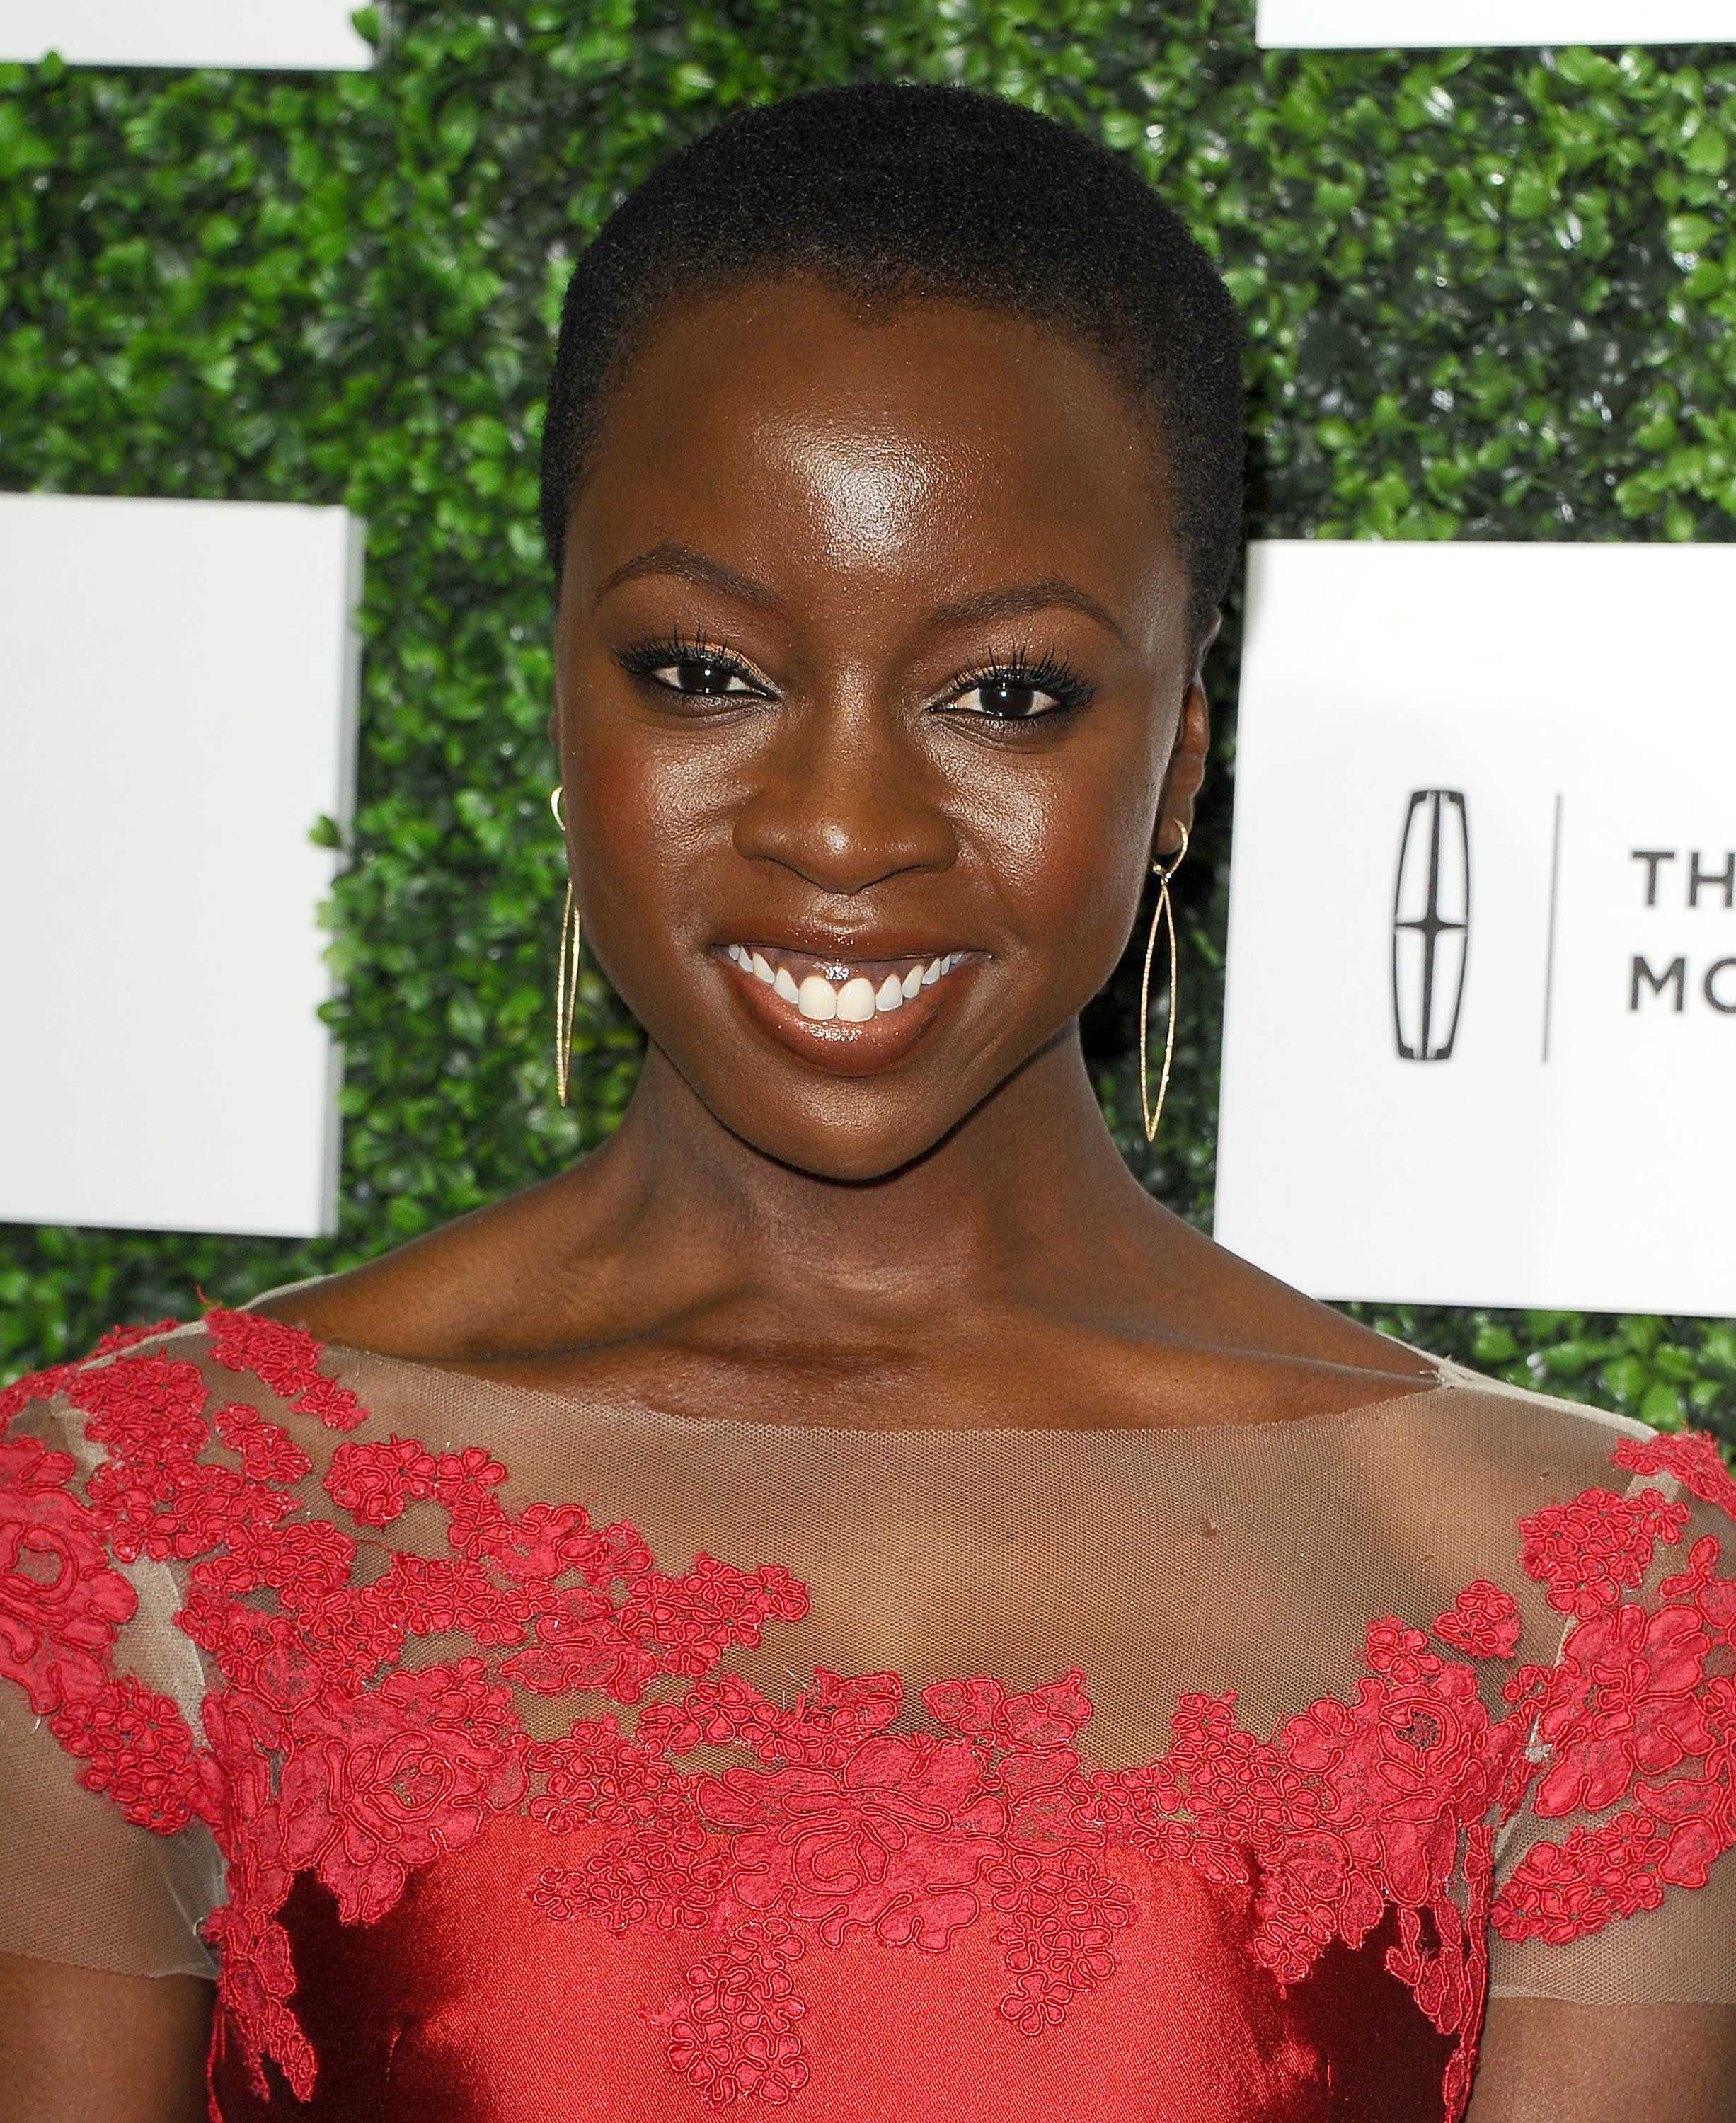 BEVERLY HILLS, CA - FEBRUARY 27:  Actress Danai Gurira attends the 7th annual ESSENCE Black Women In Hollywood luncheon at Beverly Hills Hotel on February 27, 2014 in Beverly Hills, California.  (Photo by Jason LaVeris/FilmMagic)